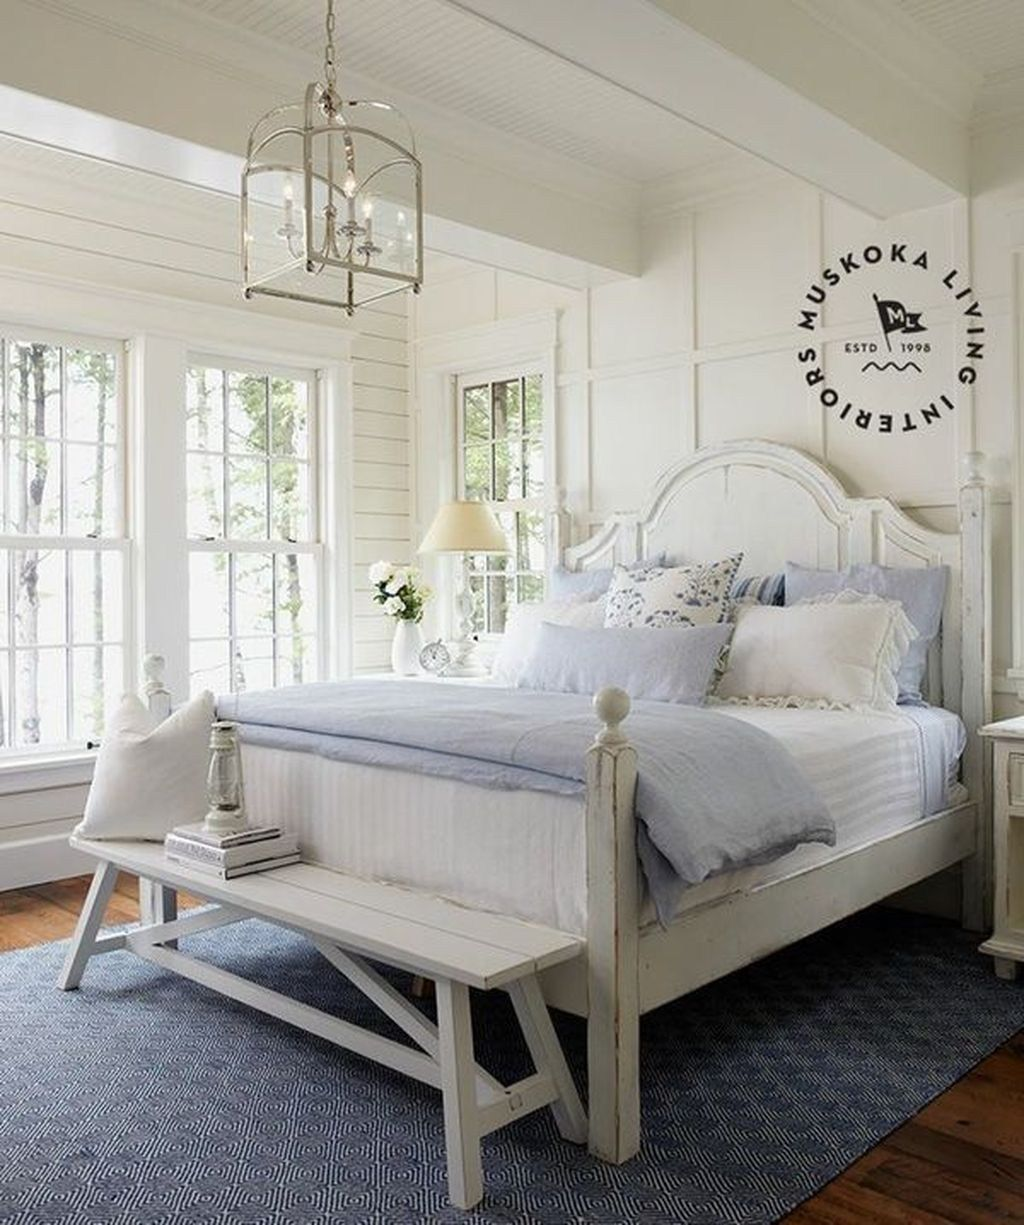 Luxury rustic lake house bedroom ideas also for the rh pinterest